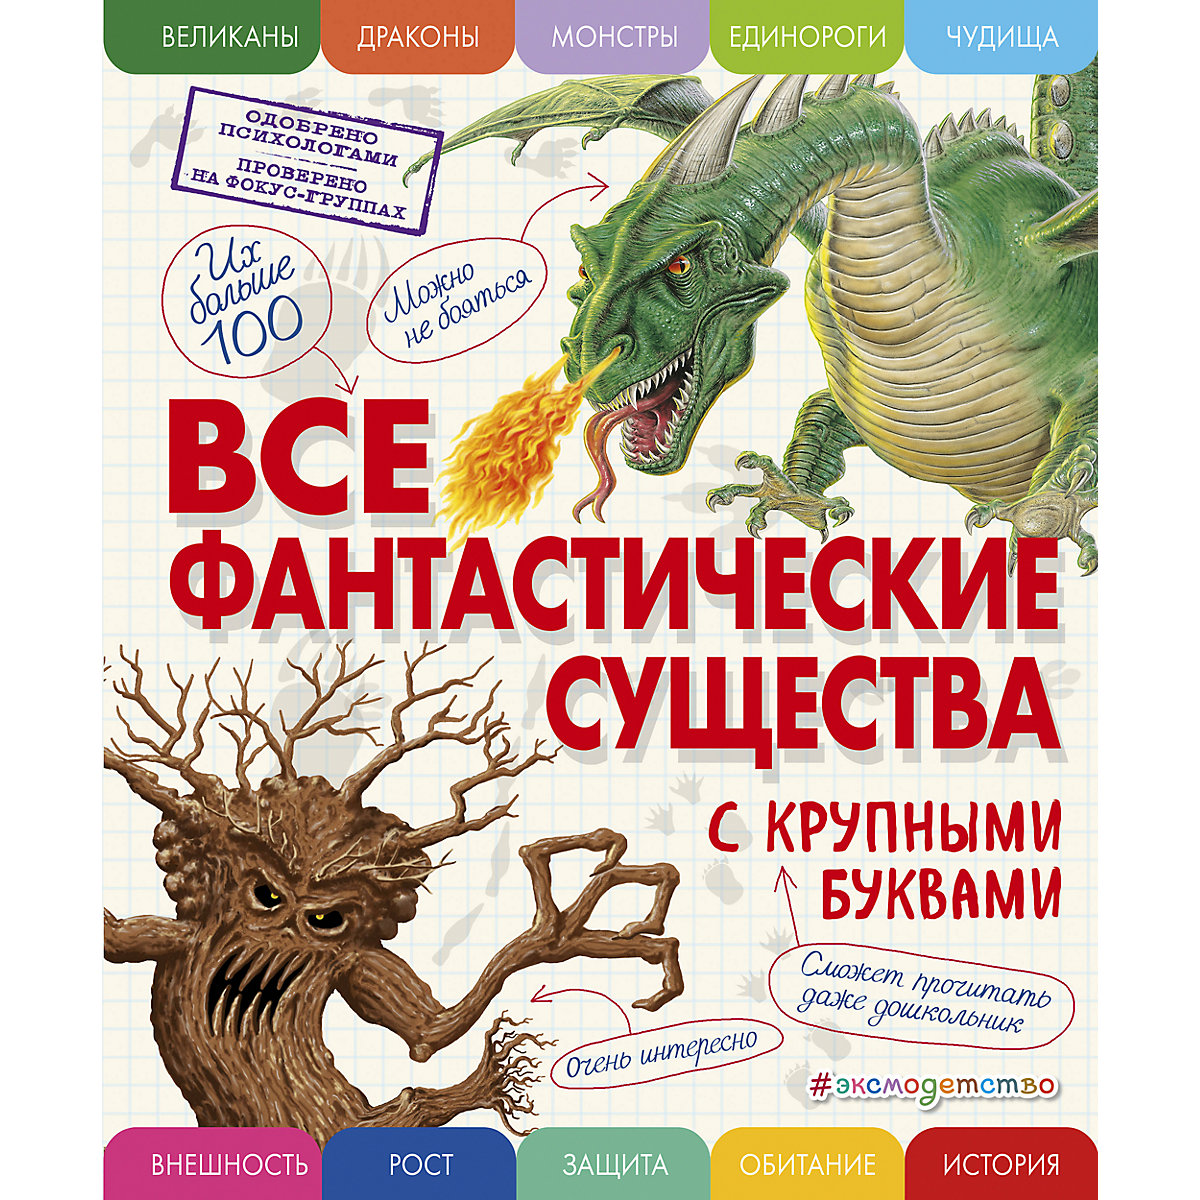 Books EKSMO 10036944 Children Education Encyclopedia Alphabet Dictionary Book For Baby MTpromo